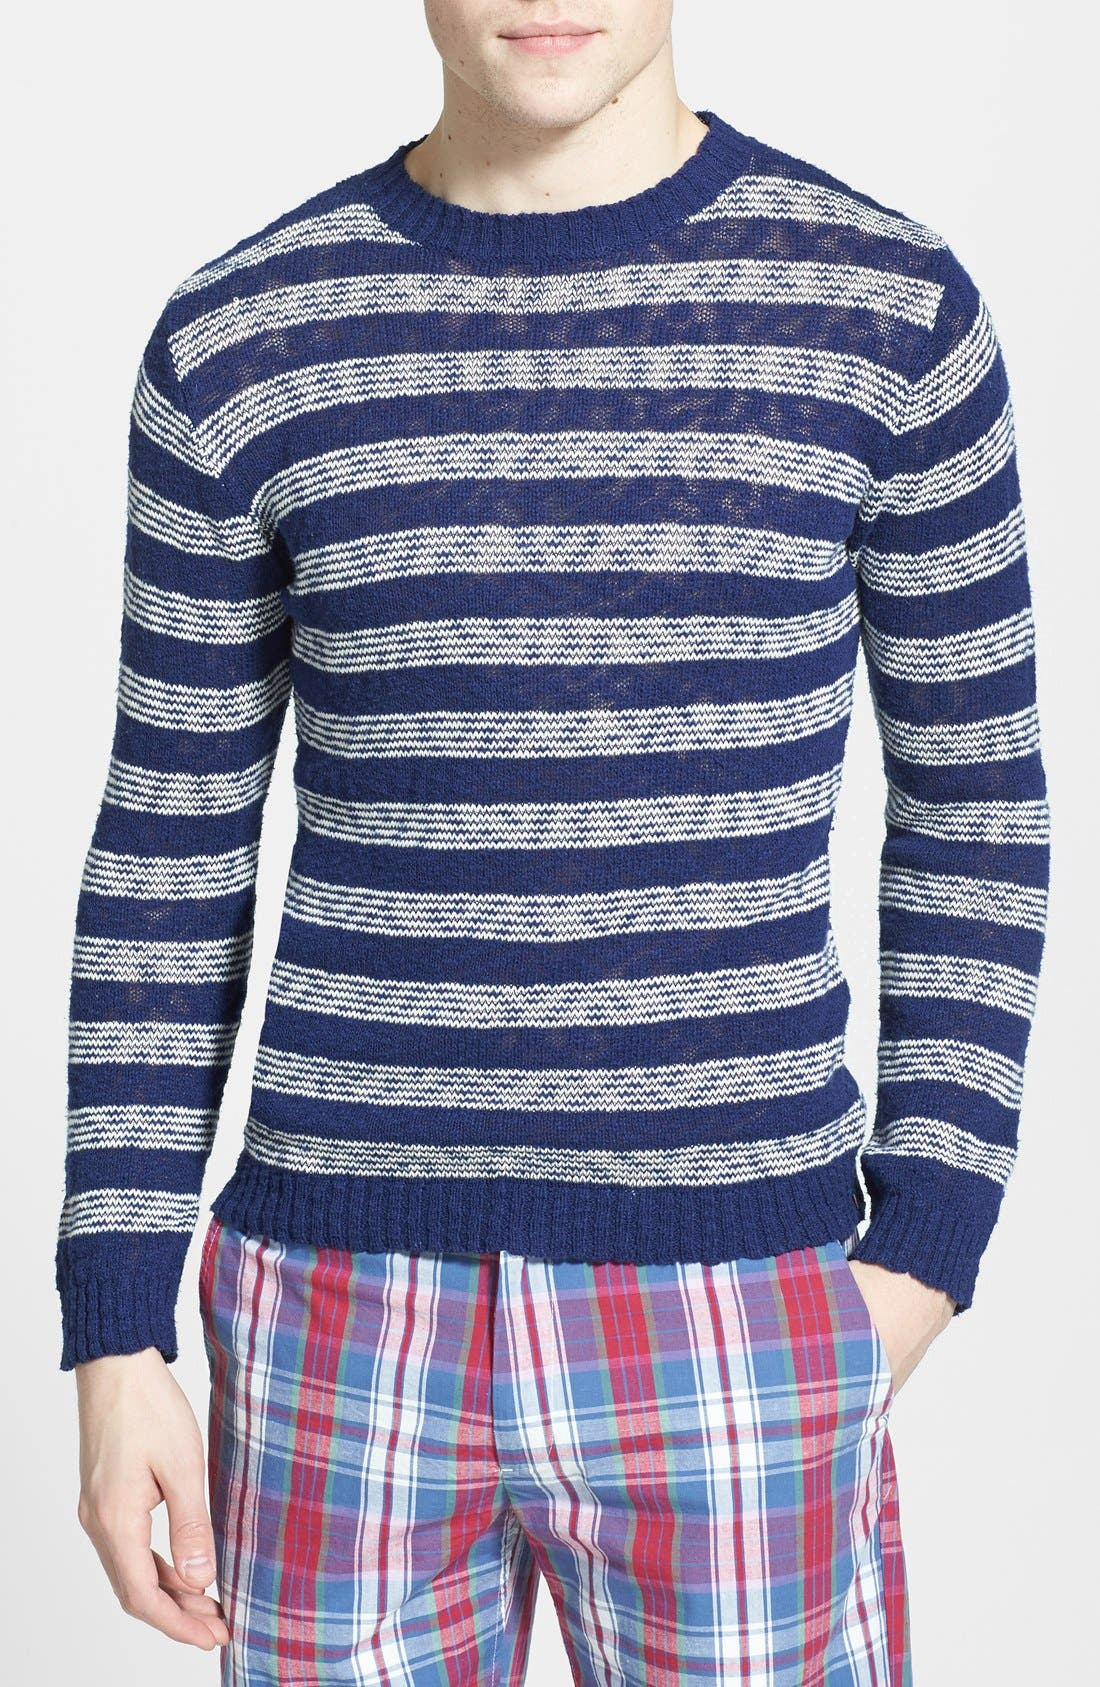 Alternate Image 1 Selected - Gant Rugger 'The Slubber' Sweater